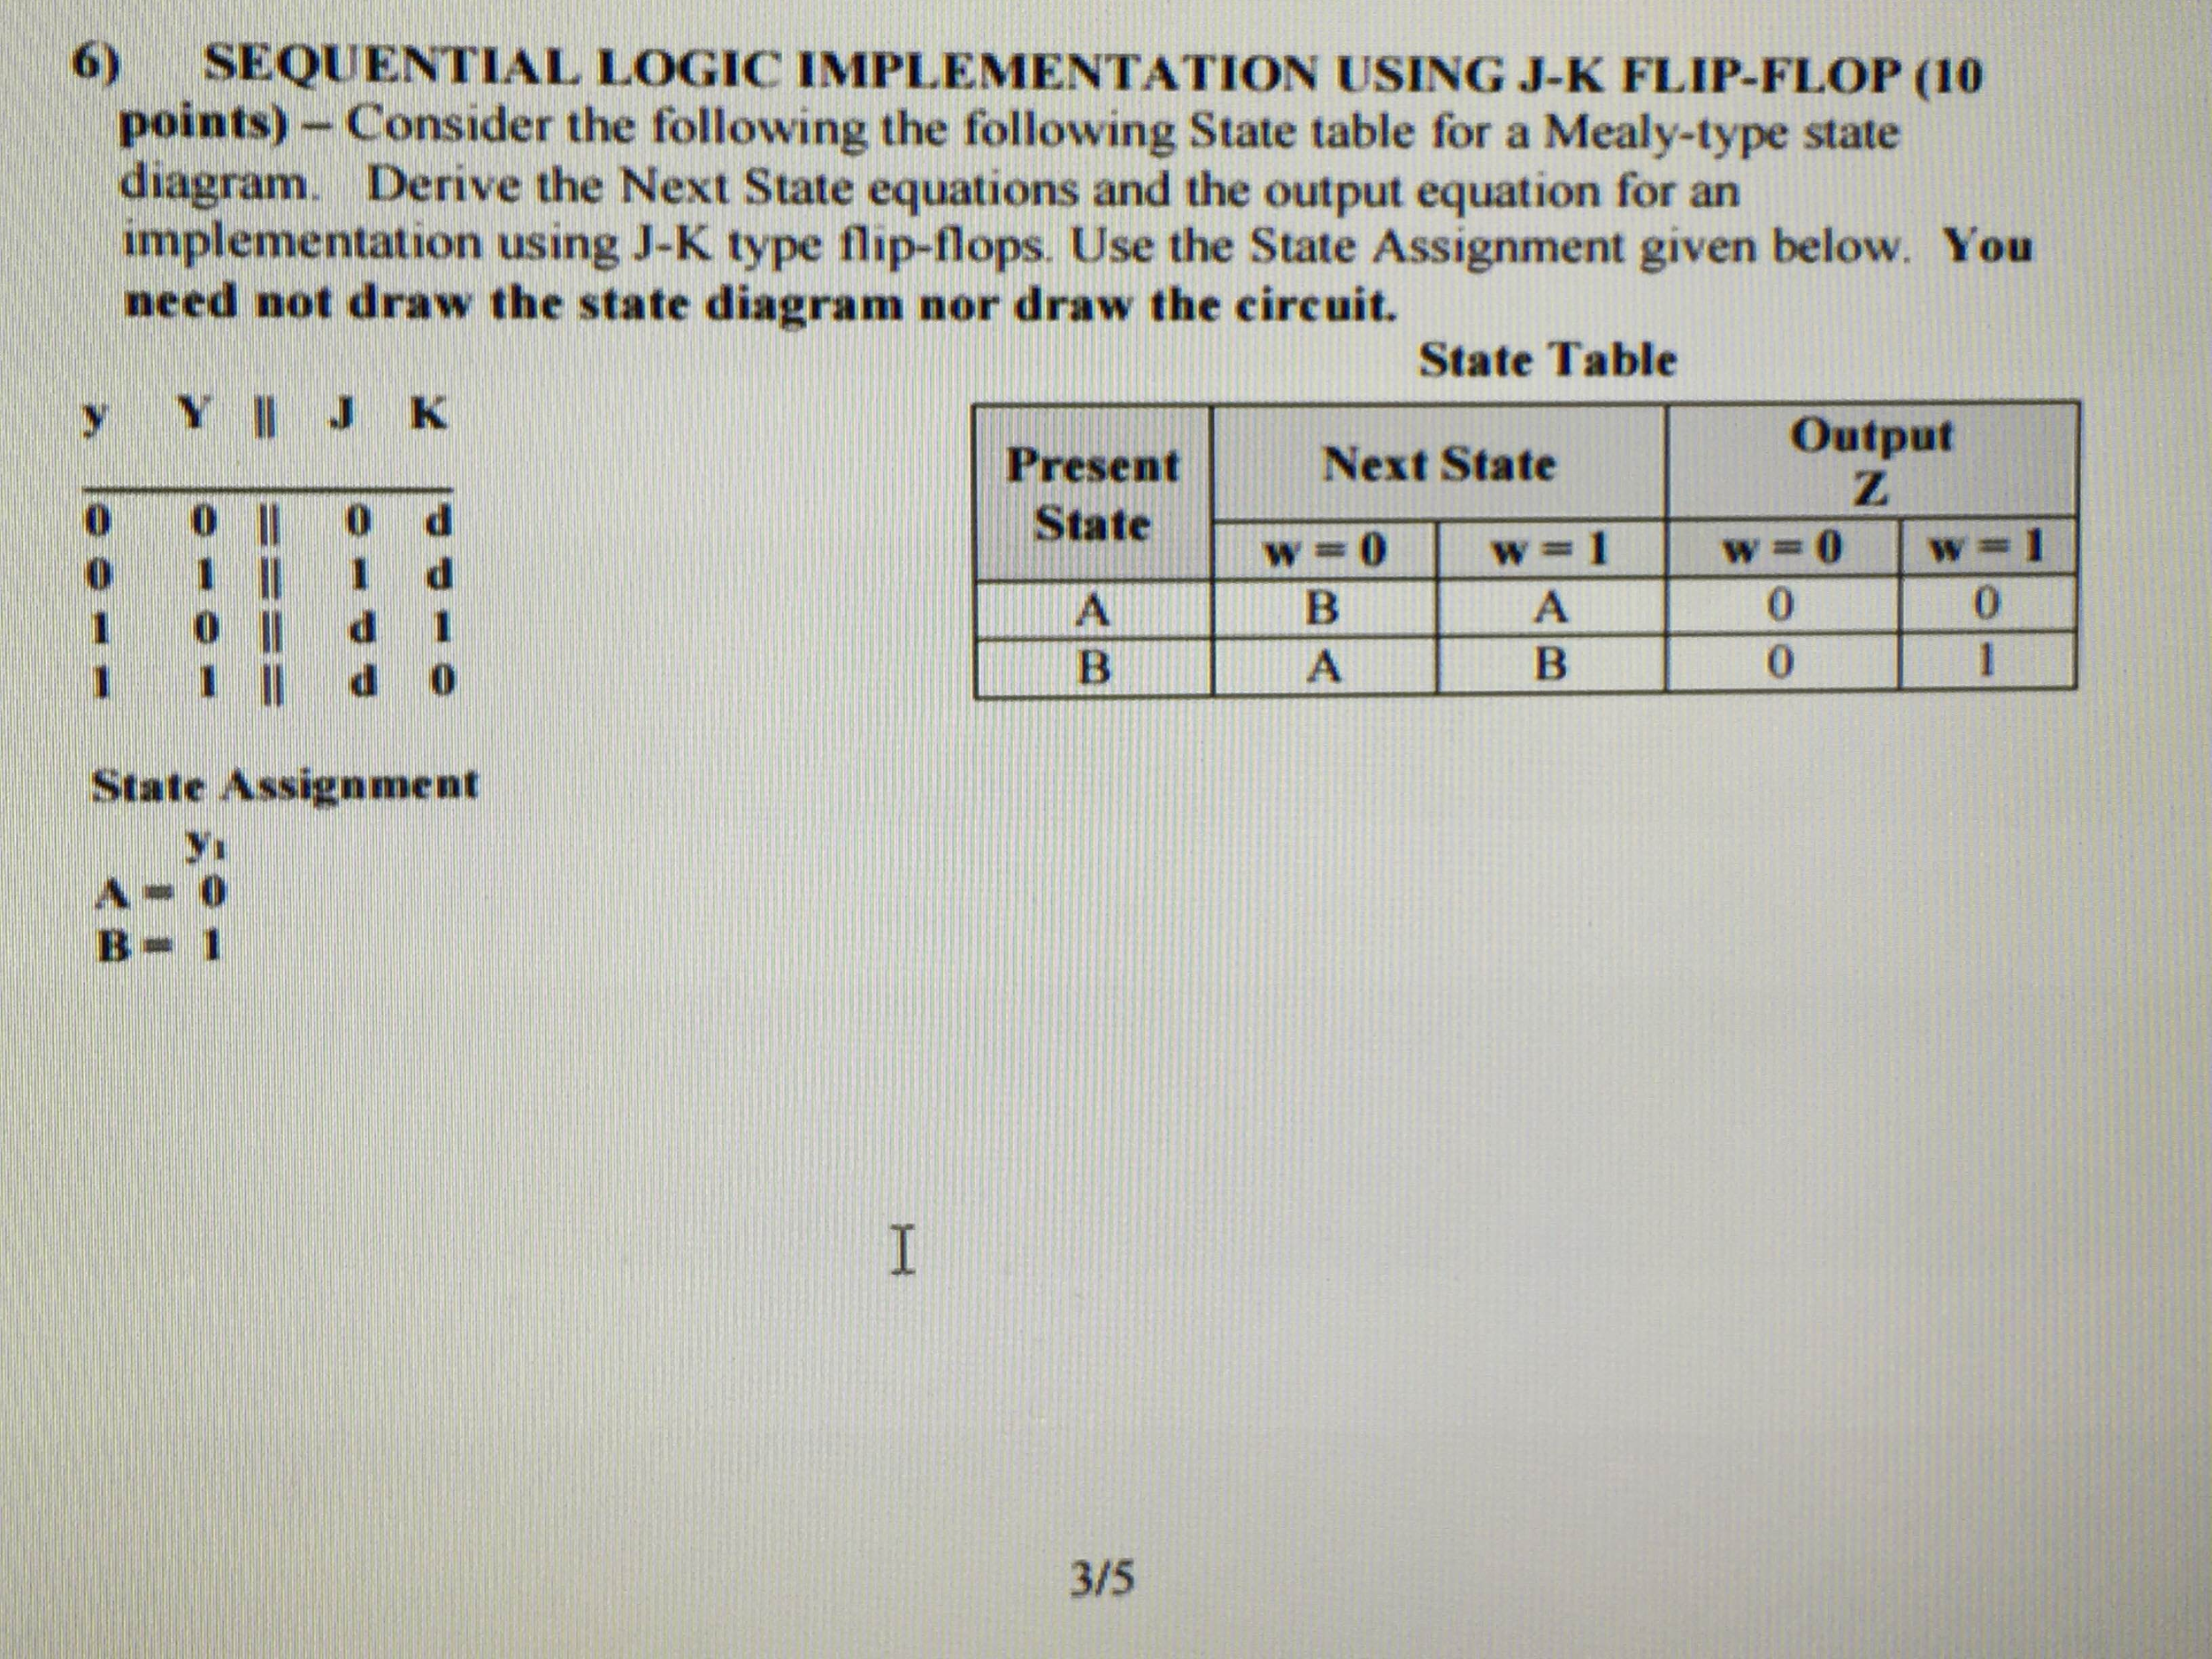 Sequence logic implementation using JK Flip Flop: